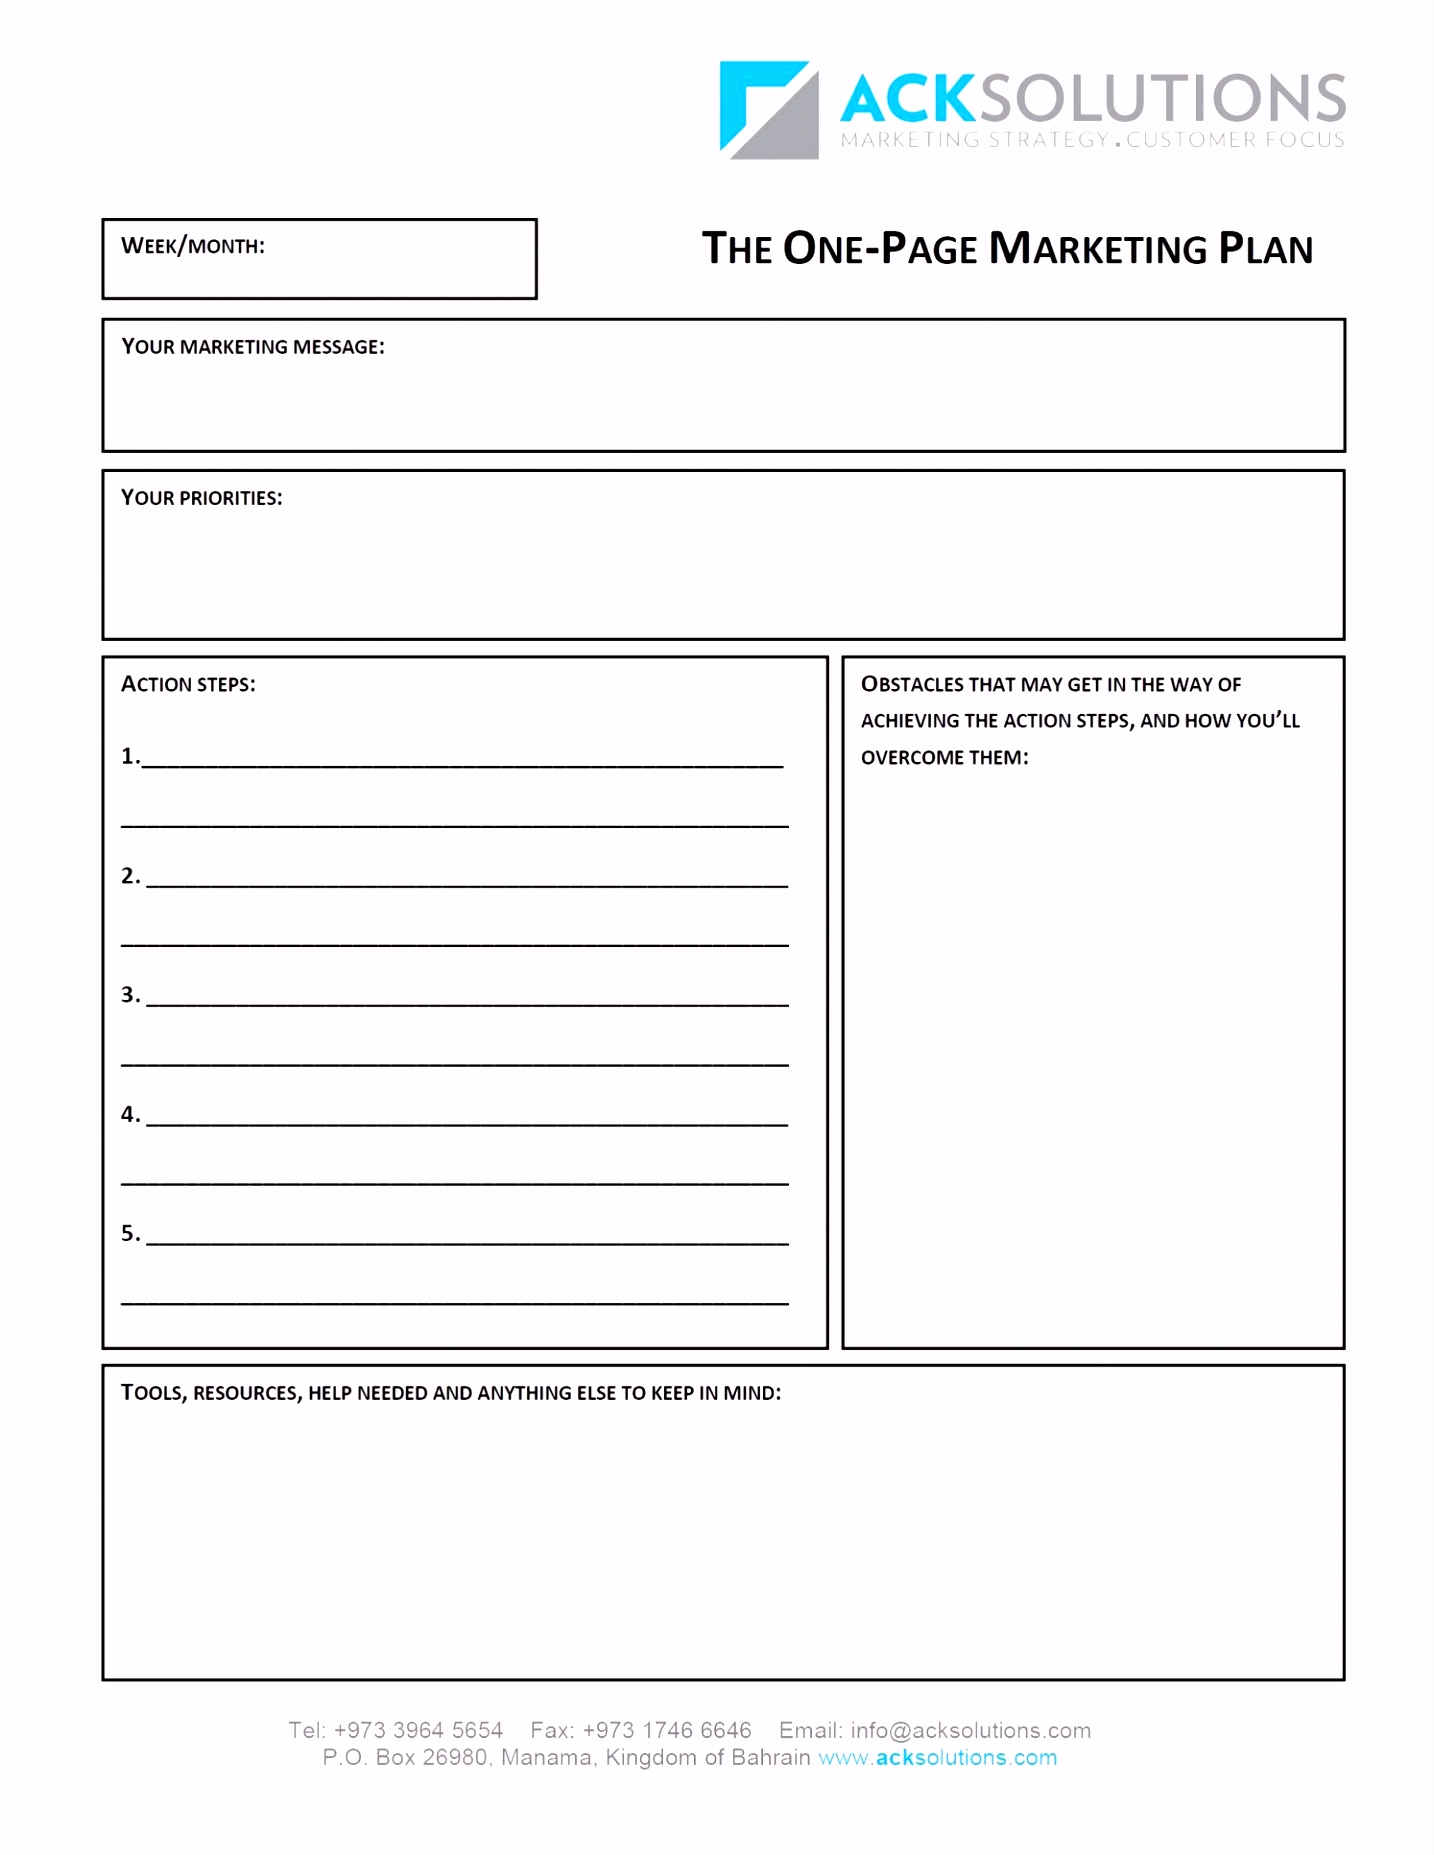 Excellent Mobile App Marketing Plan Template pp77 – Documentaries